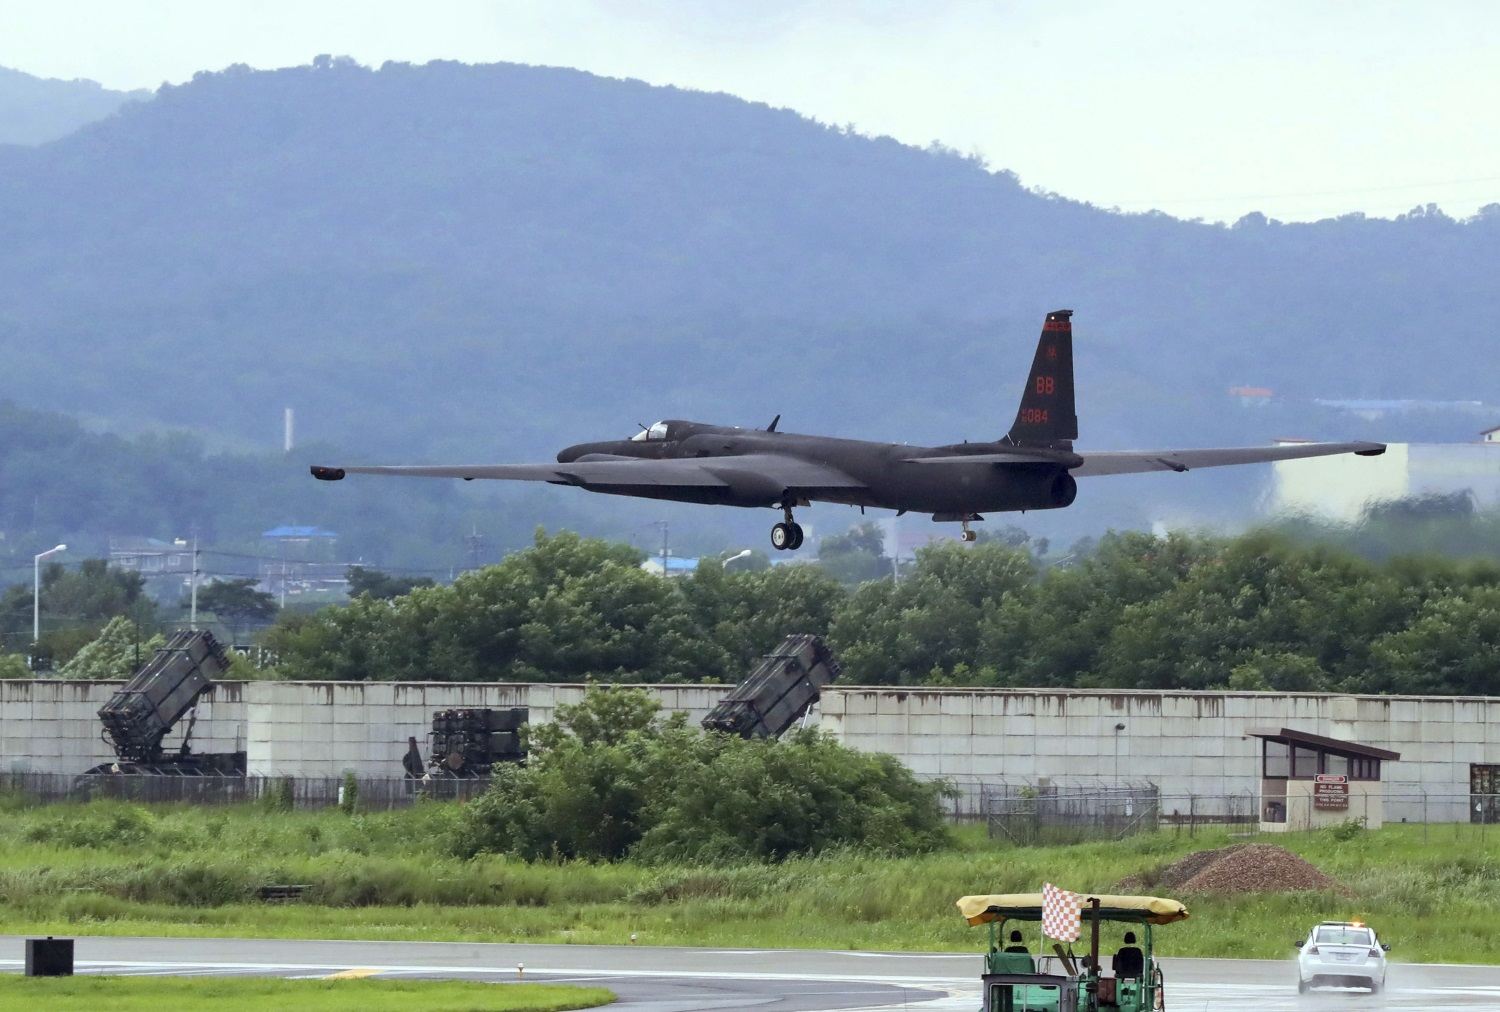 A U.S. Air Force U-2 spy plane takes off on the runway at the Osan U.S. Air Base in Pyeongtaek, South Korea, Aug. 21, 2017. (Lee Sang-hack/Yonhap via AP)